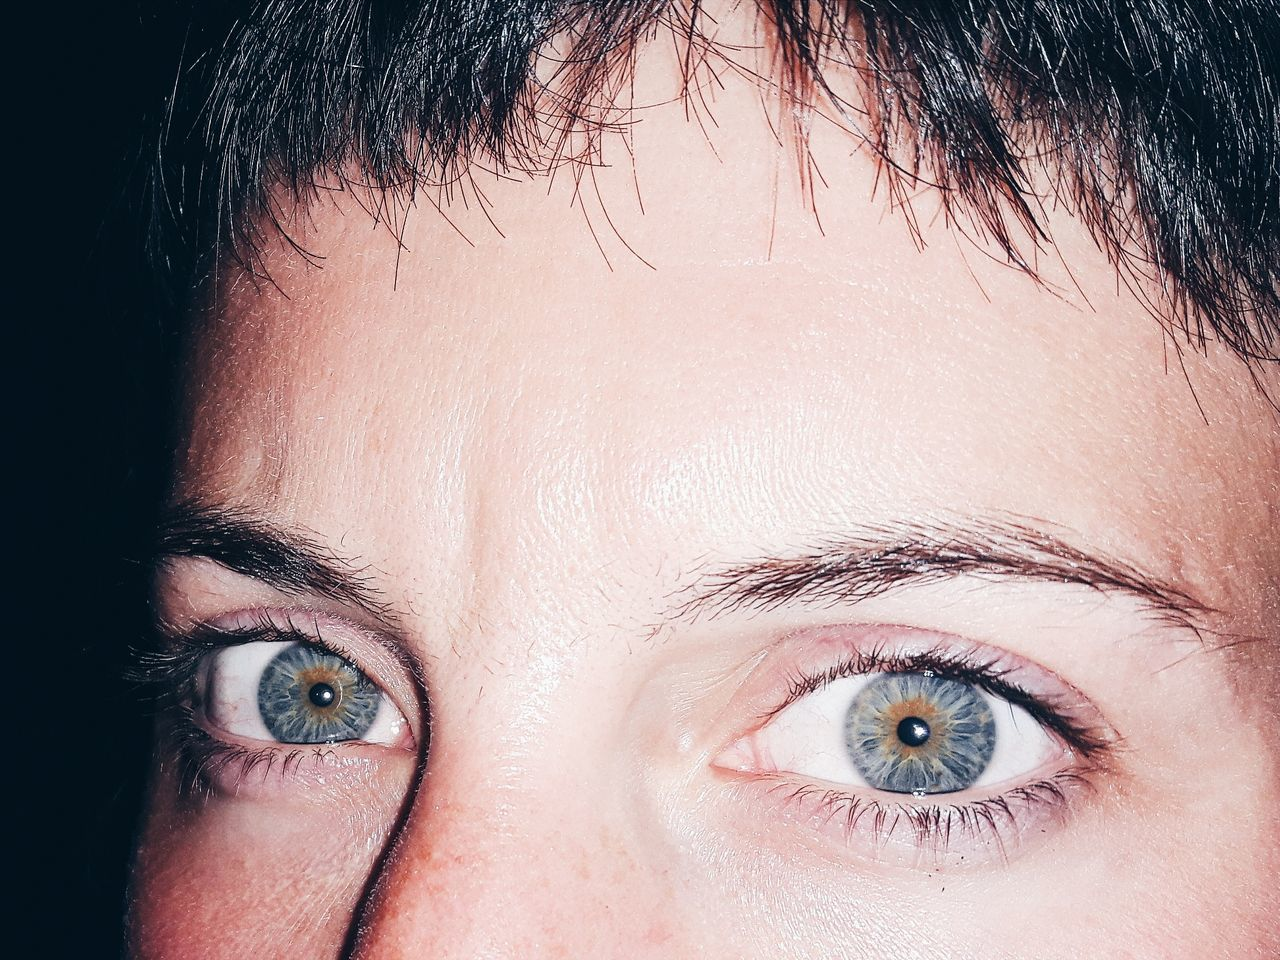 Close-up Human Body Part Portrait Front View Looking At Camera Adults Only Human Eye Only Women Human Face Adult Eye Eyes Futuristic Full Frame One Woman Only People One Person Women Science Young Adult Day BYOPaper! Place Of Heart Live For The Story